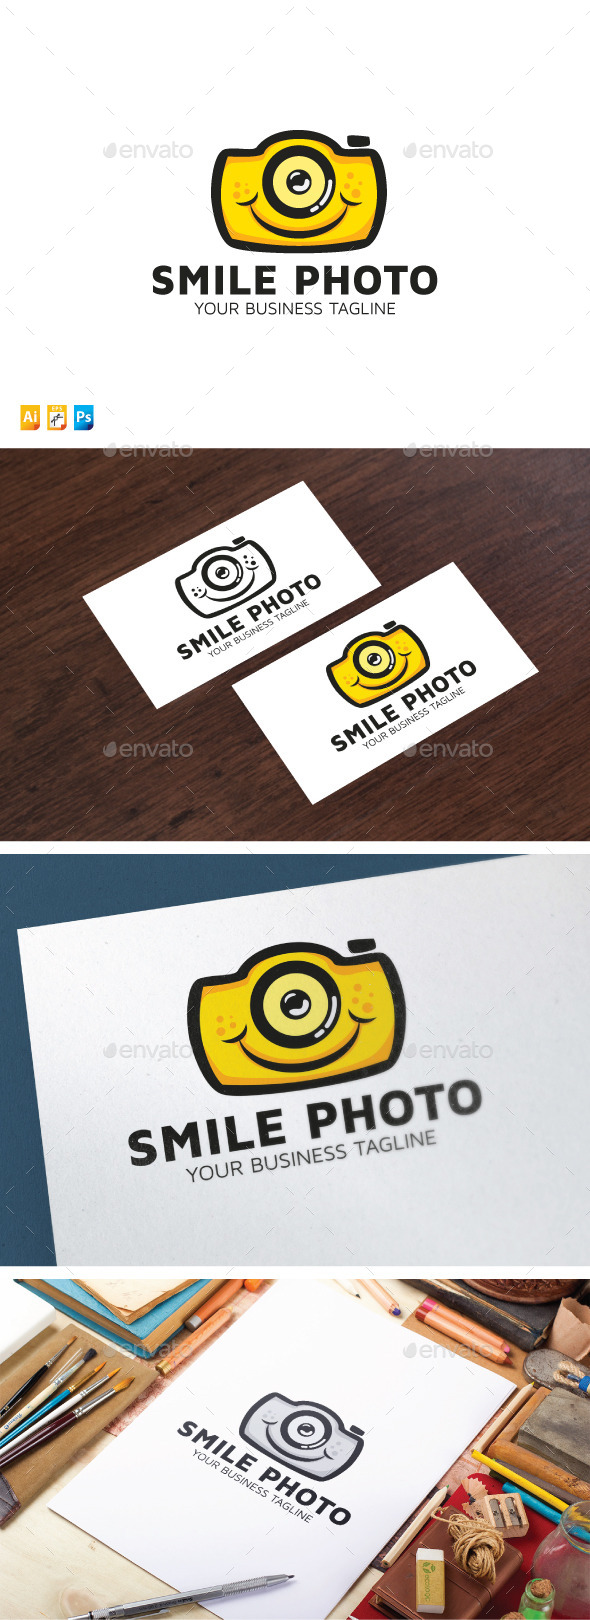 Smile Photo - Objects Logo Templates